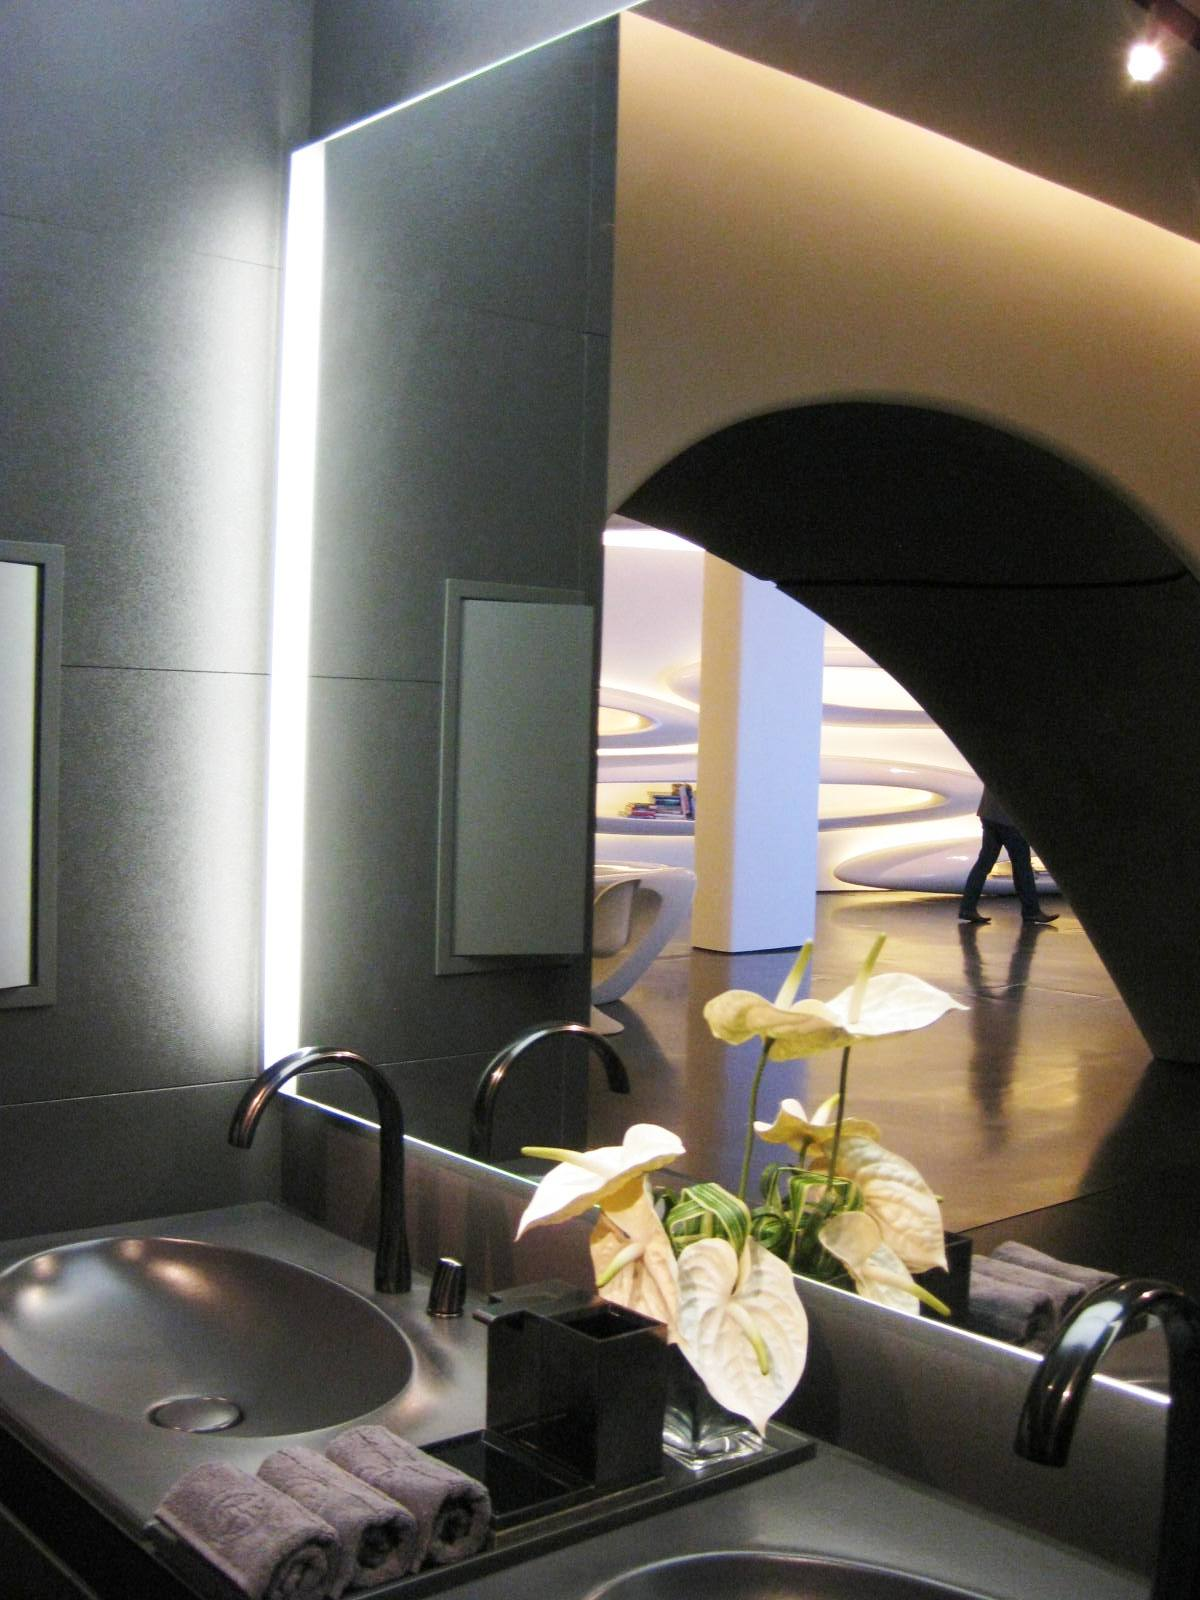 Roca showroom by zaha hadid art by caroline banks for Roca showroom